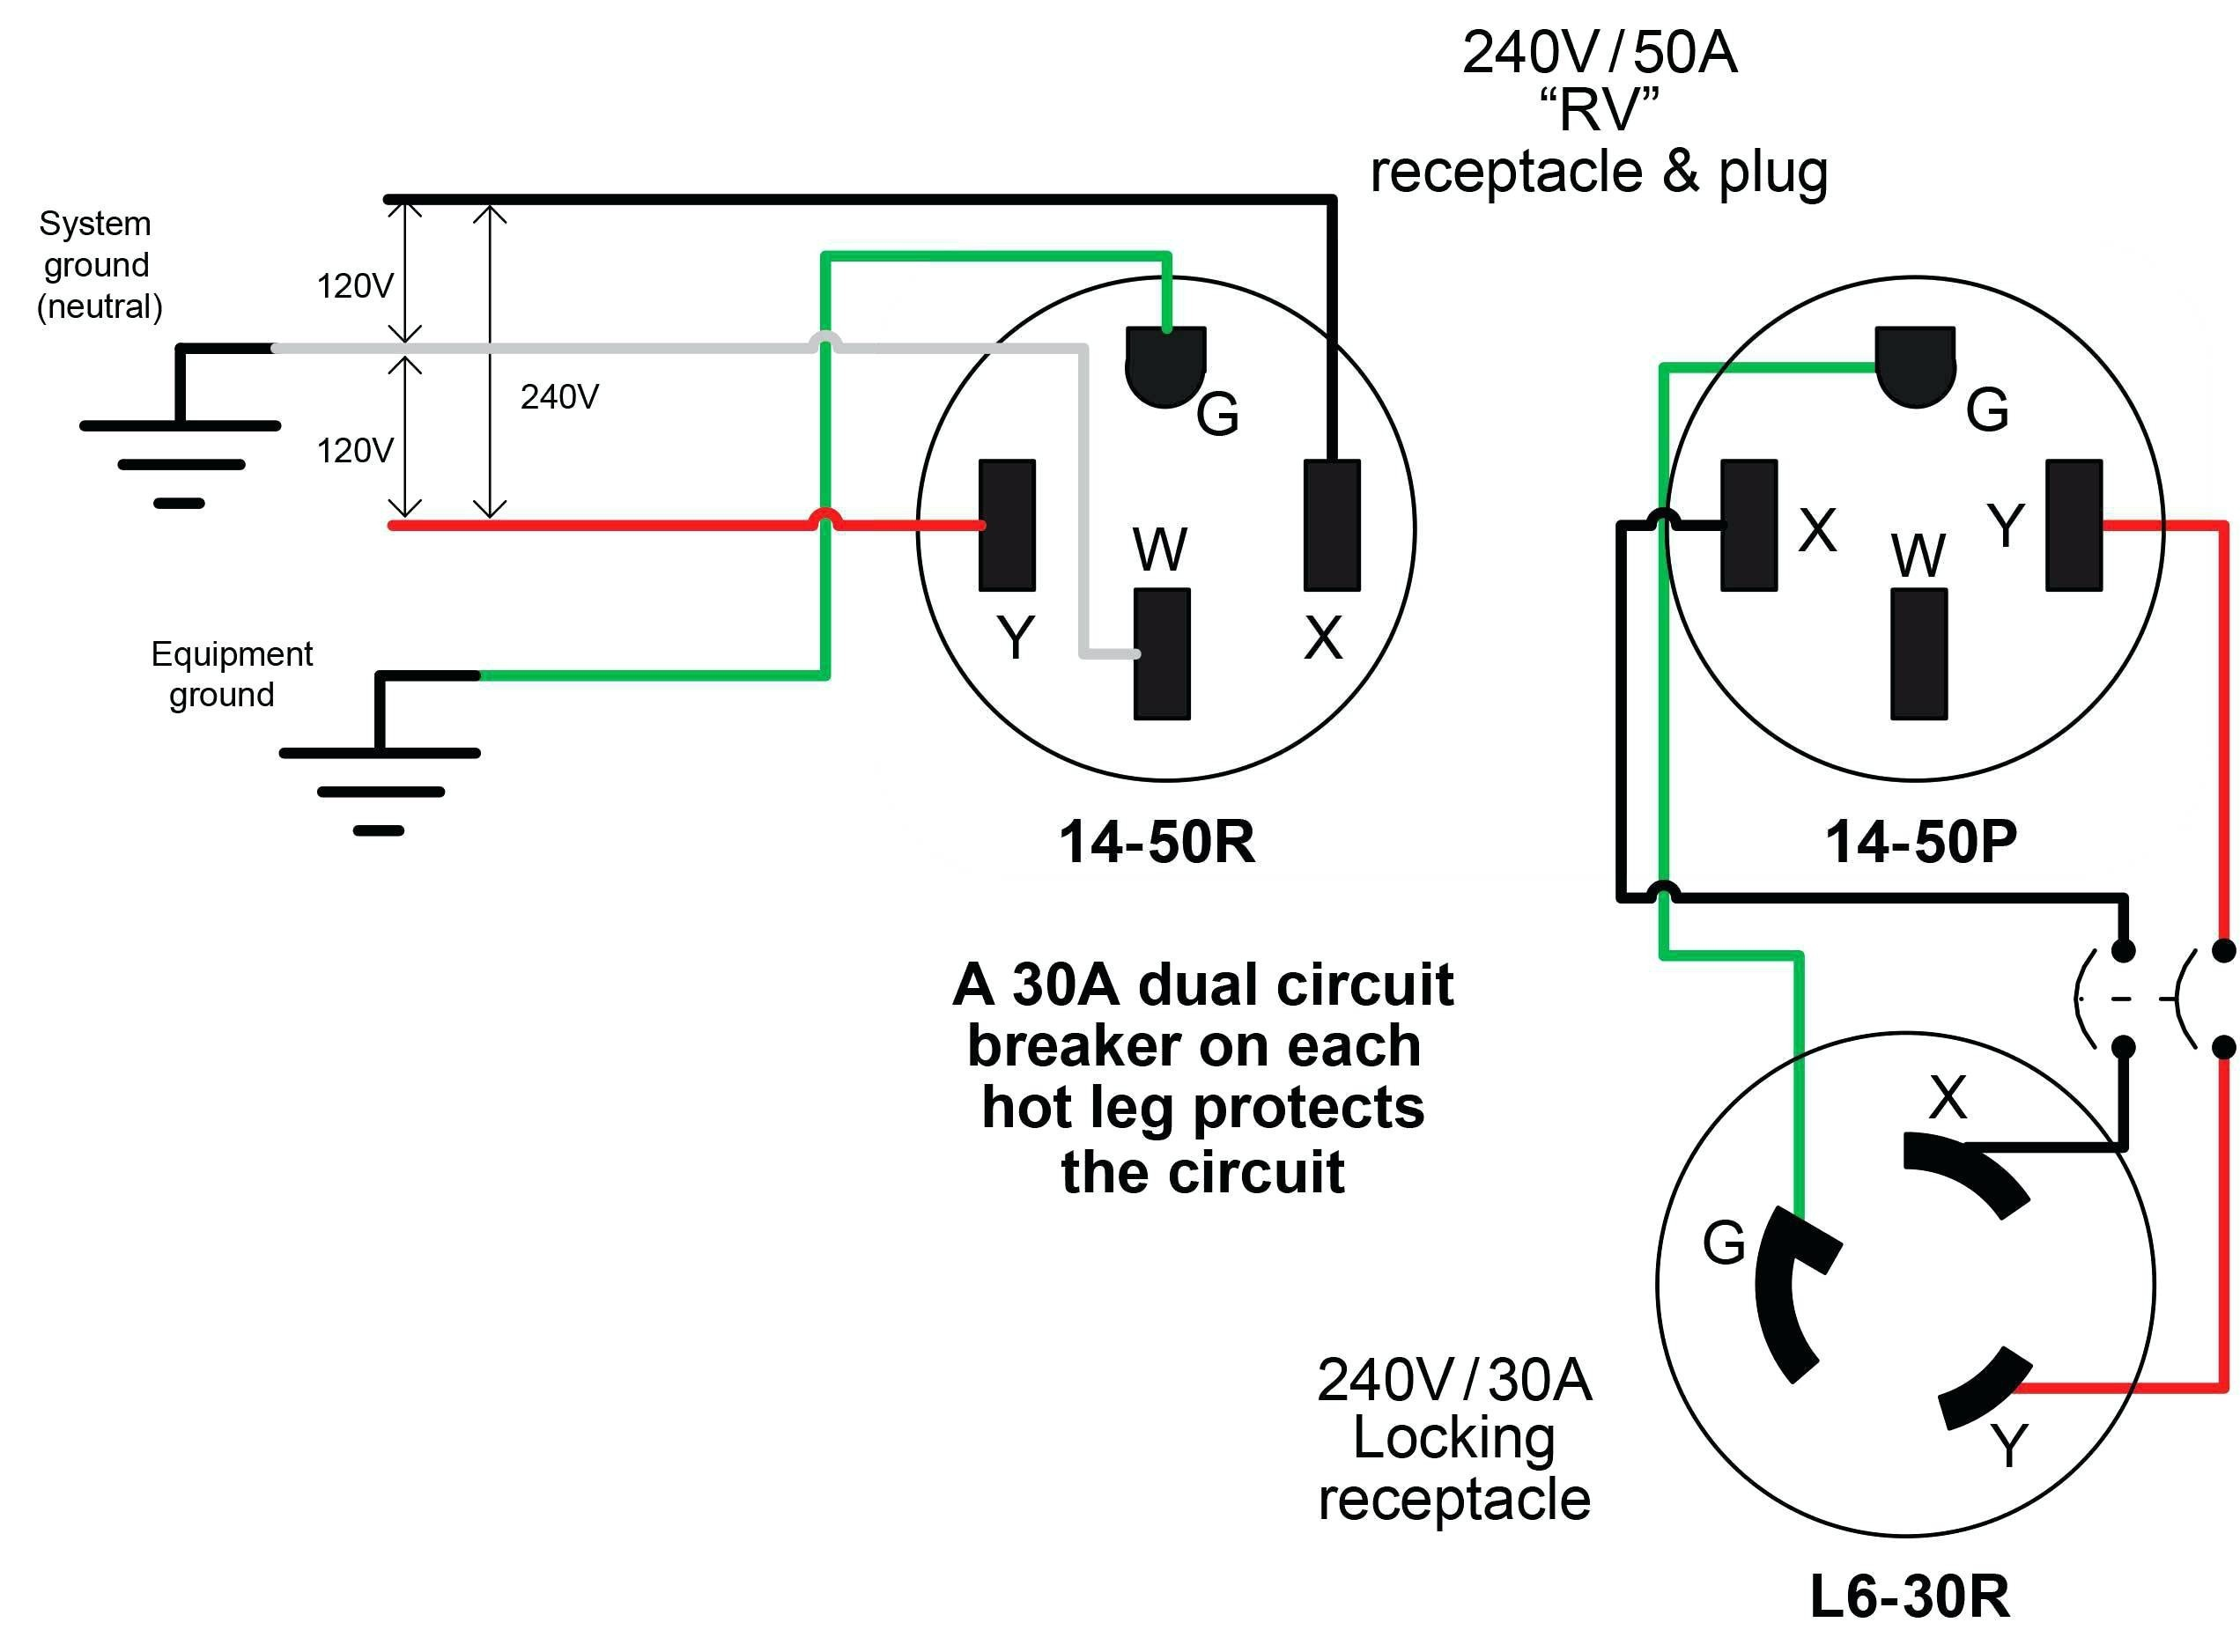 wiring diagram for nema 14 50r receptacle a duplex outlet my